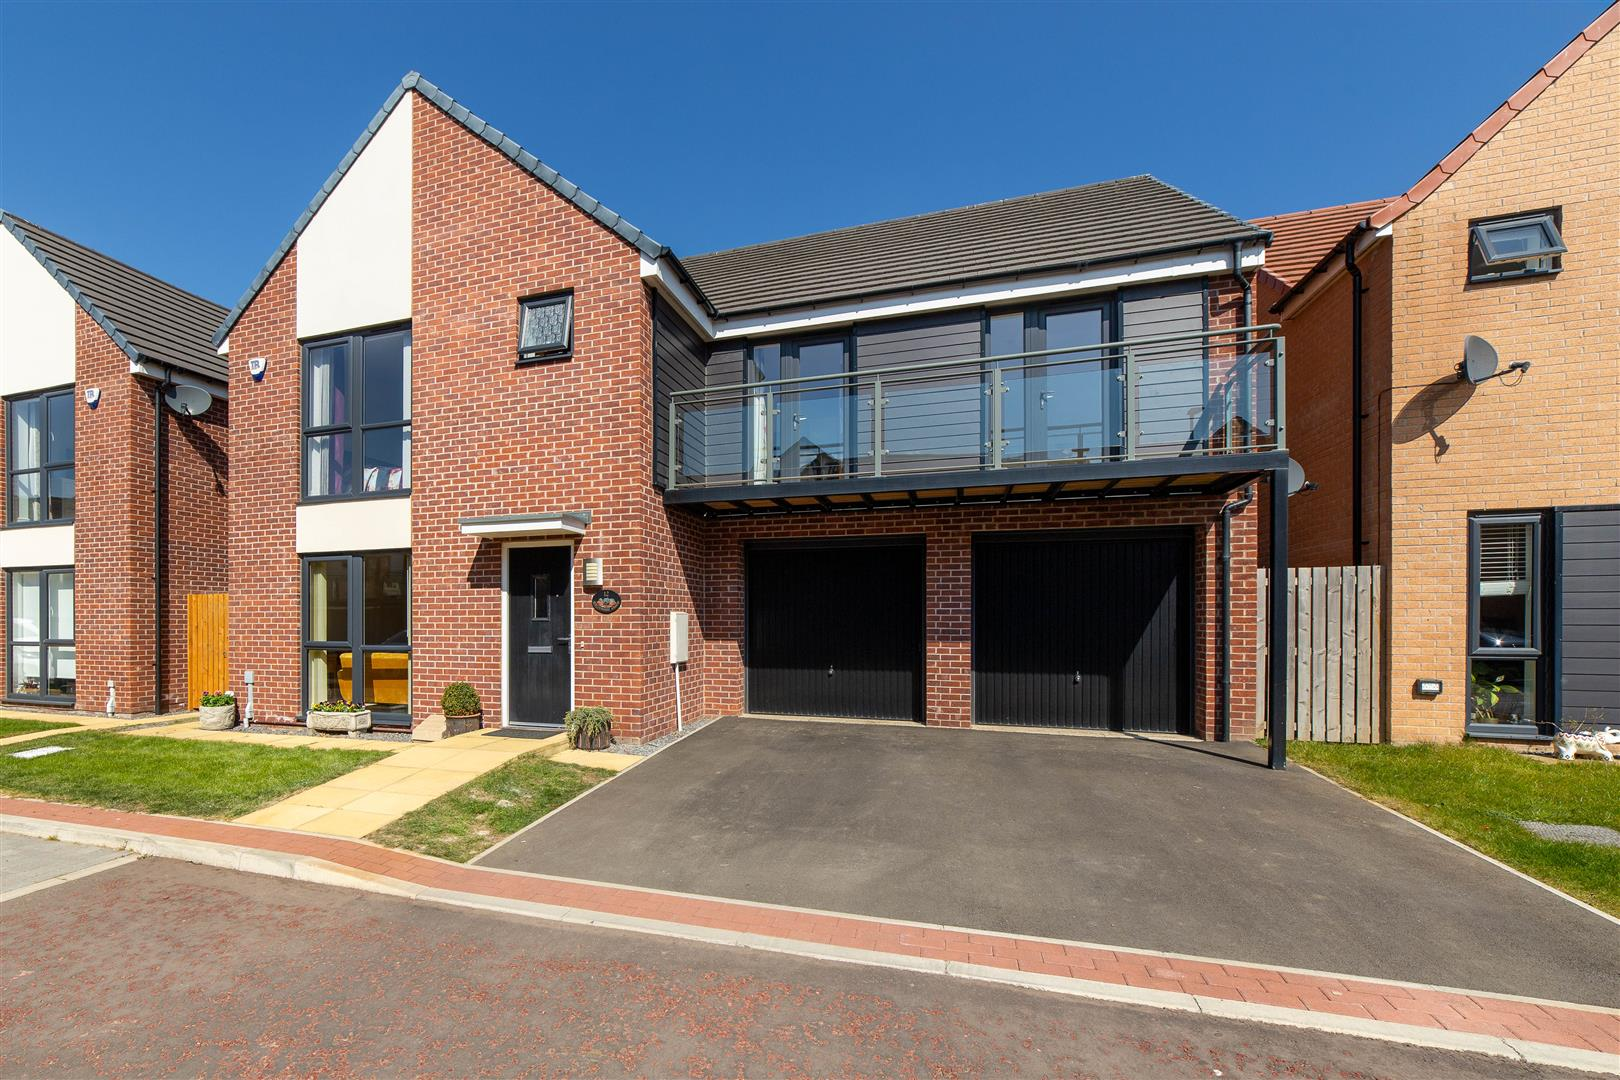 5 bed detached house for sale in Birchwood Chase, Great Park  - Property Image 1